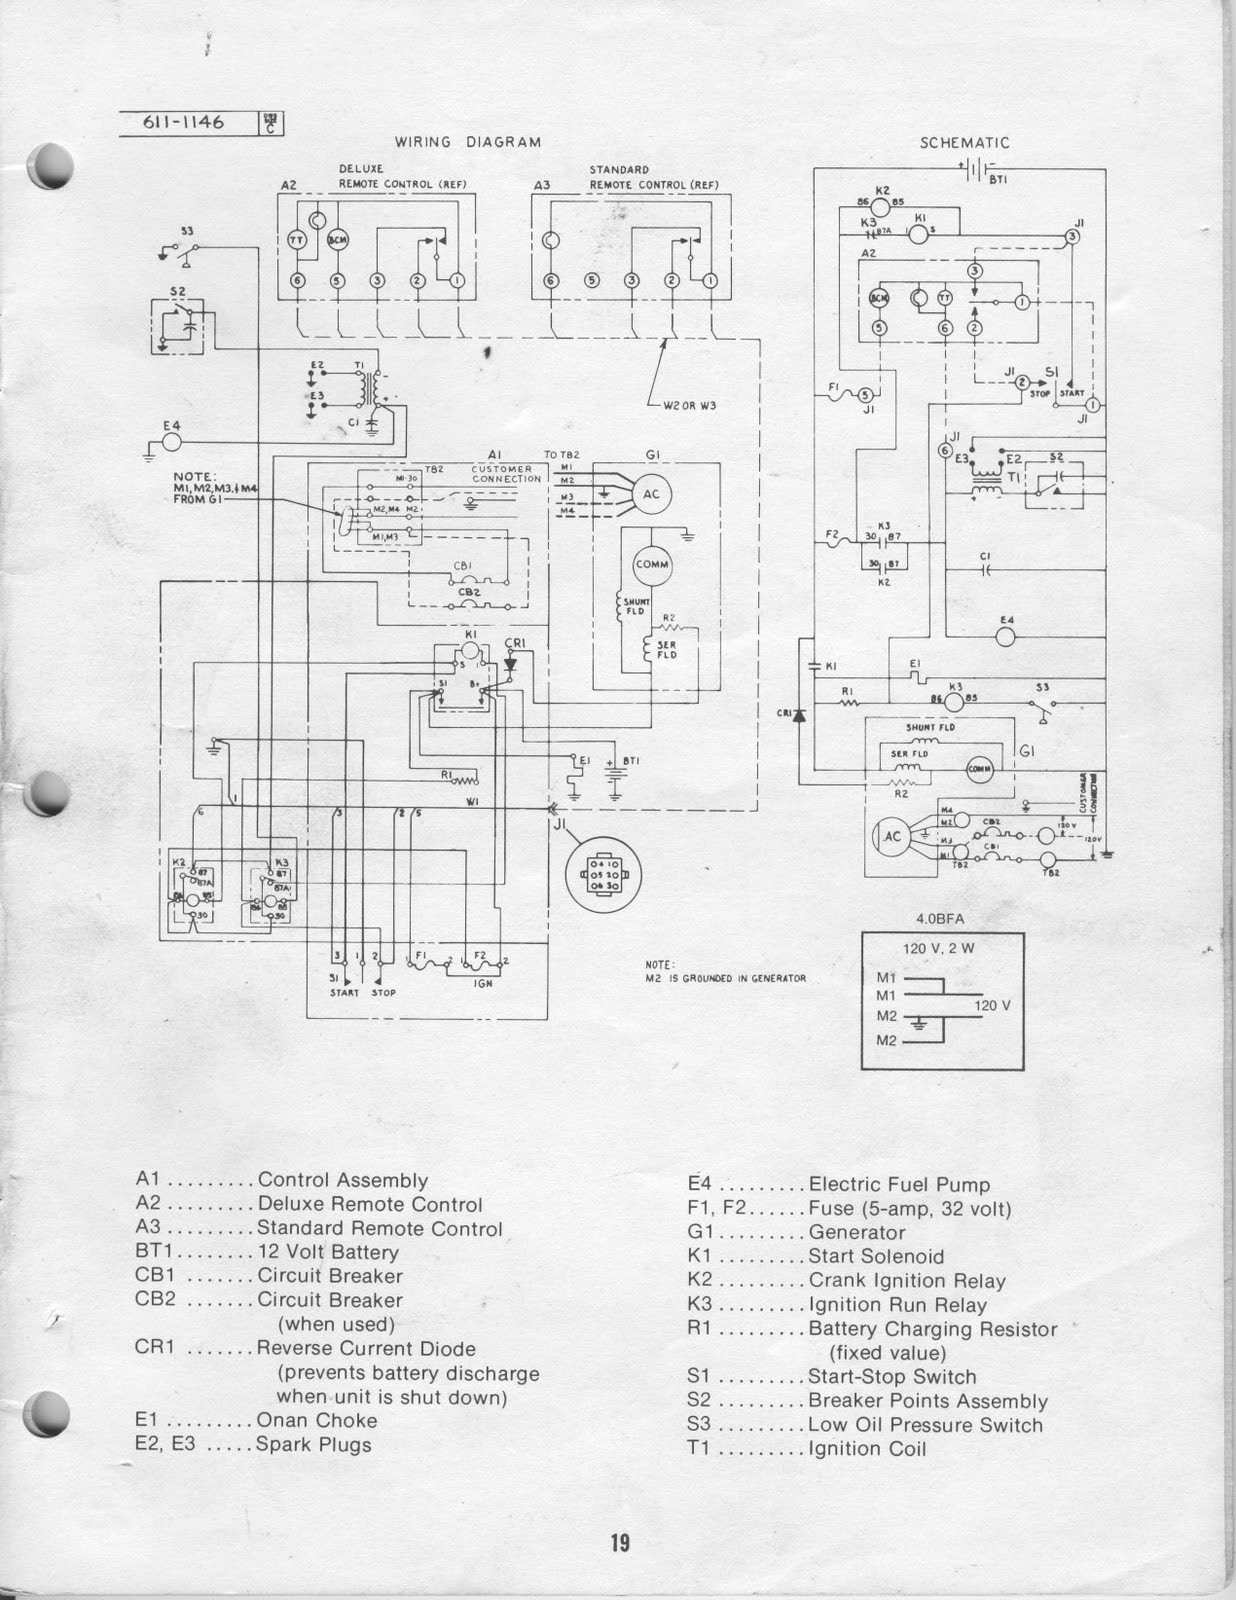 [DIAGRAM] 1988 Pace Arrow Motorhome Wiring Diagram HD